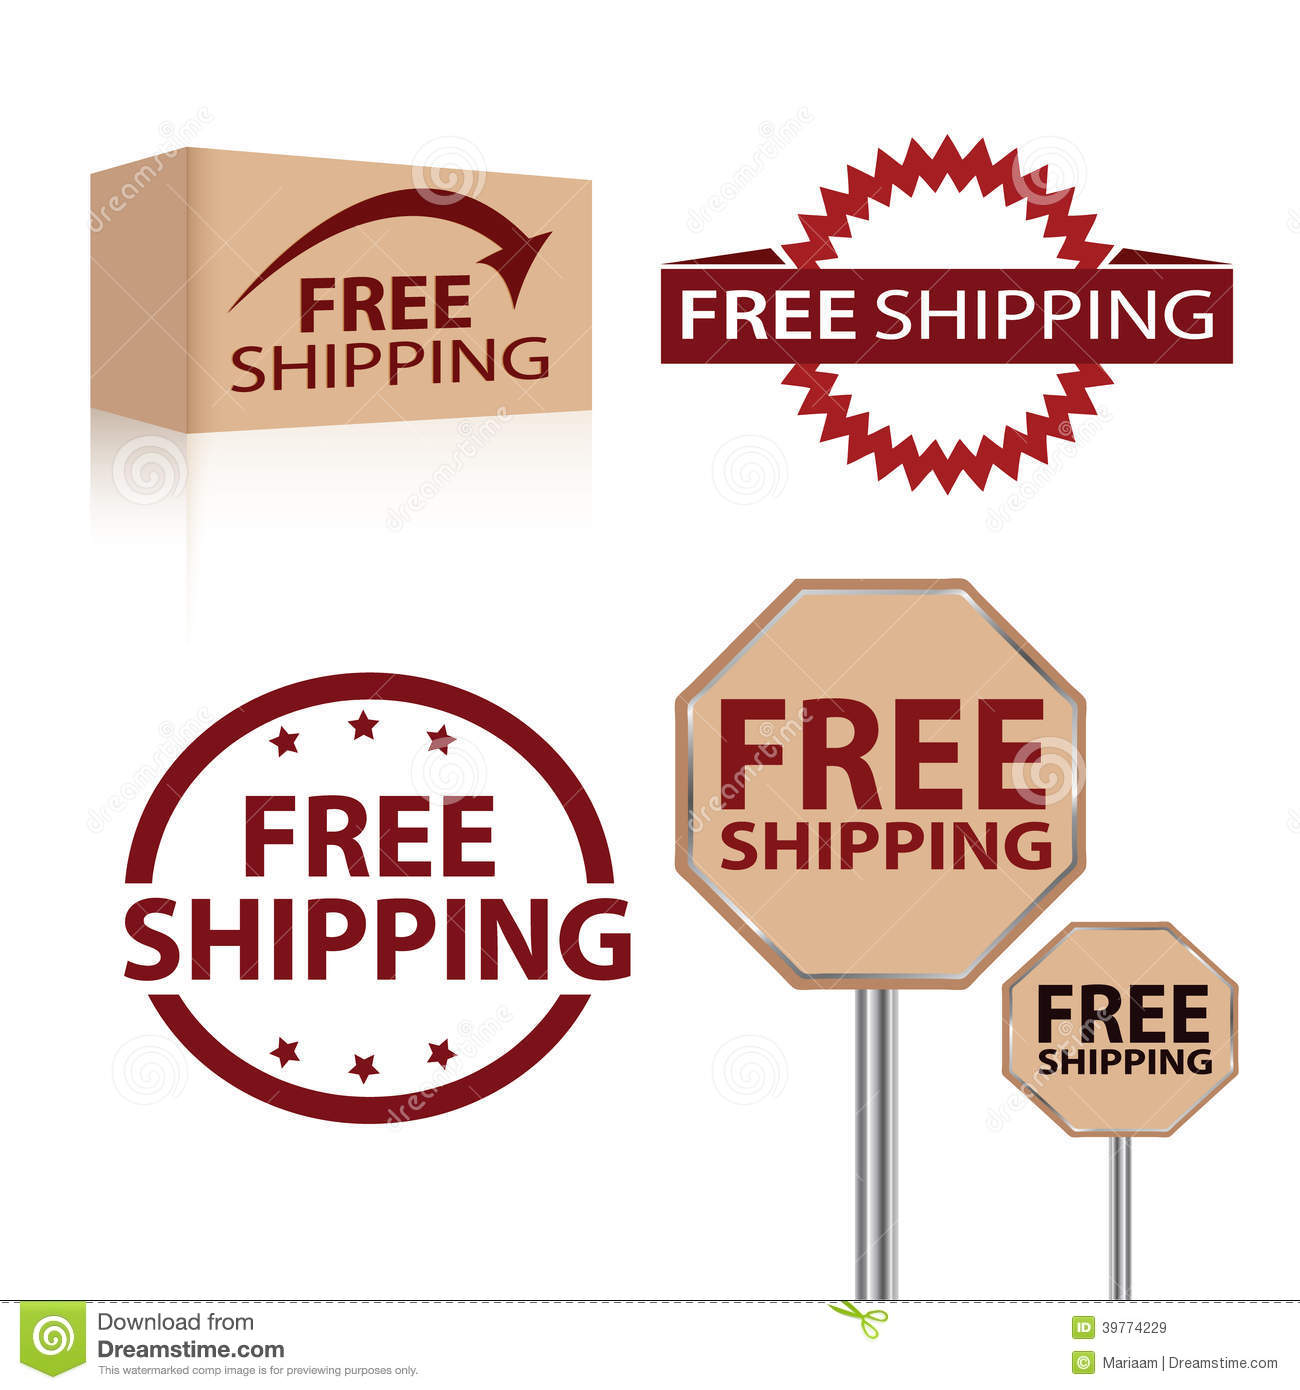 Free Shipping Stock Illustration - Image: 39774229